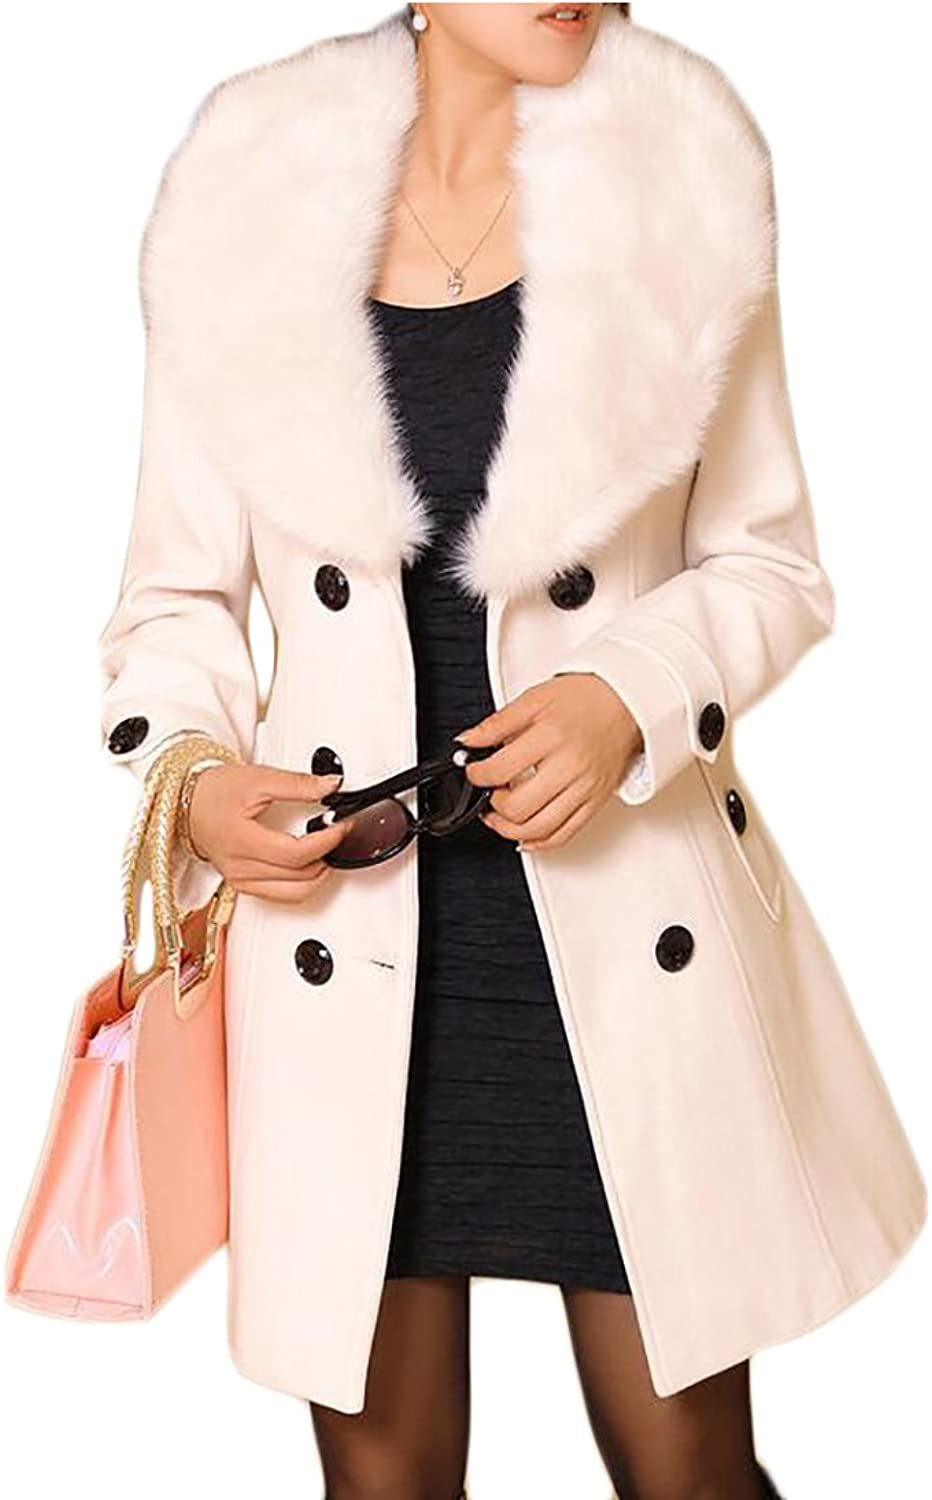 Nanquanwomen clothes NQ Womens Classic Solid Double Breasted Faux Fur Collar Belted Wool Pea Coat